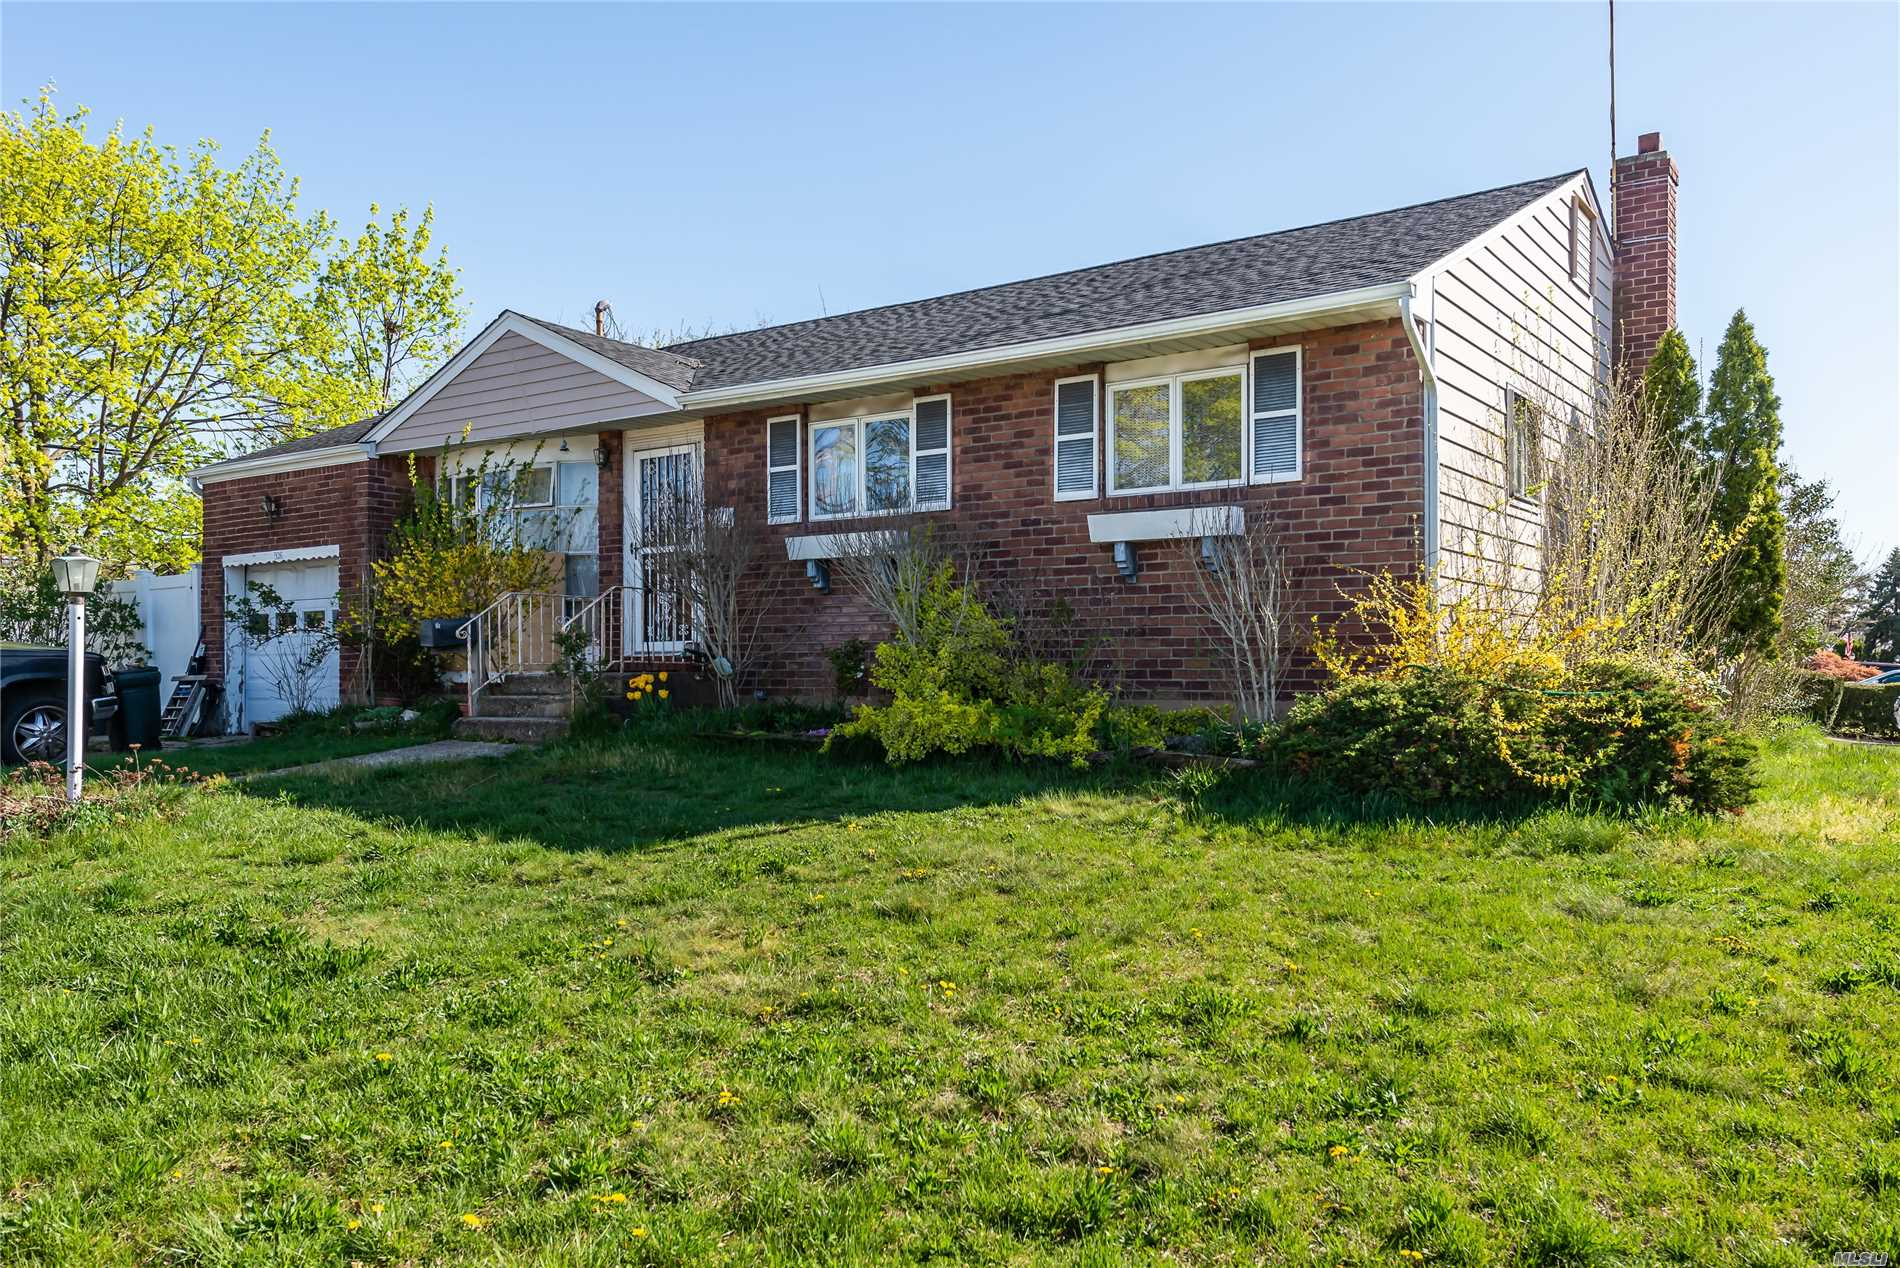 Handyman Special! 3 Bedrm/1.5 Bath Ranch on Oversized Property in East Meadow SD in Need of TLC! Large fenced-in yard, new roof, 200 AMP electric. IG Pool is not in working order. Builders with Cash Offers Preferred. Sold As Is.